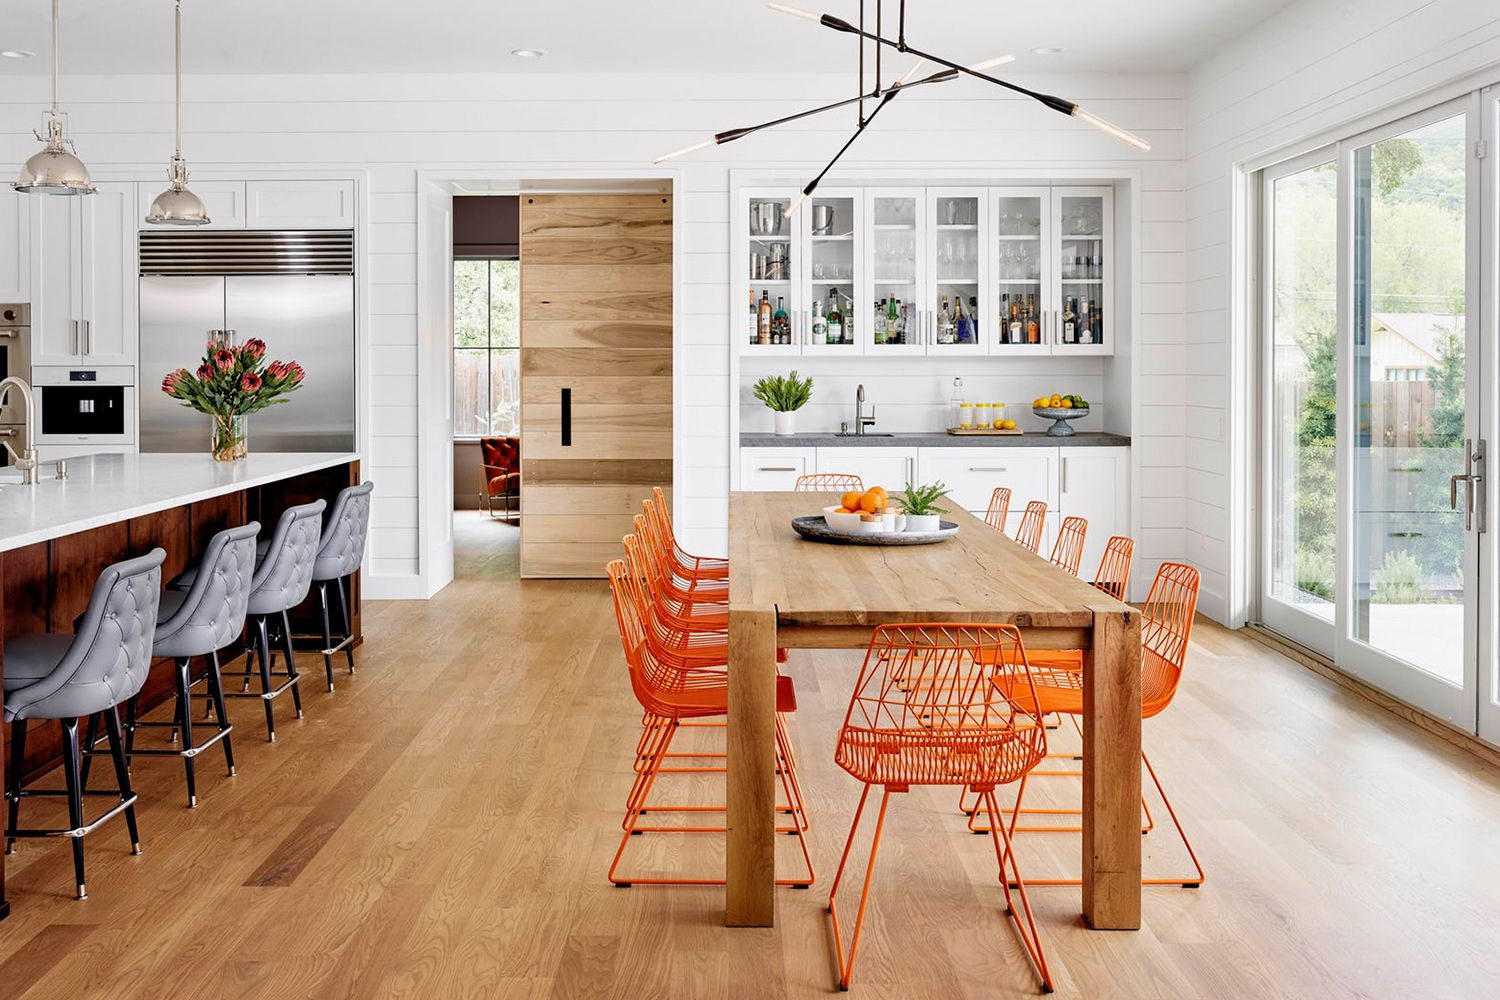 Eat In Kitchen Ideas For Your Home – Eat In Kitchen Designs Inside Most Recently Released Maloney 3 Piece Breakfast Nook Dining Sets (Image 5 of 20)